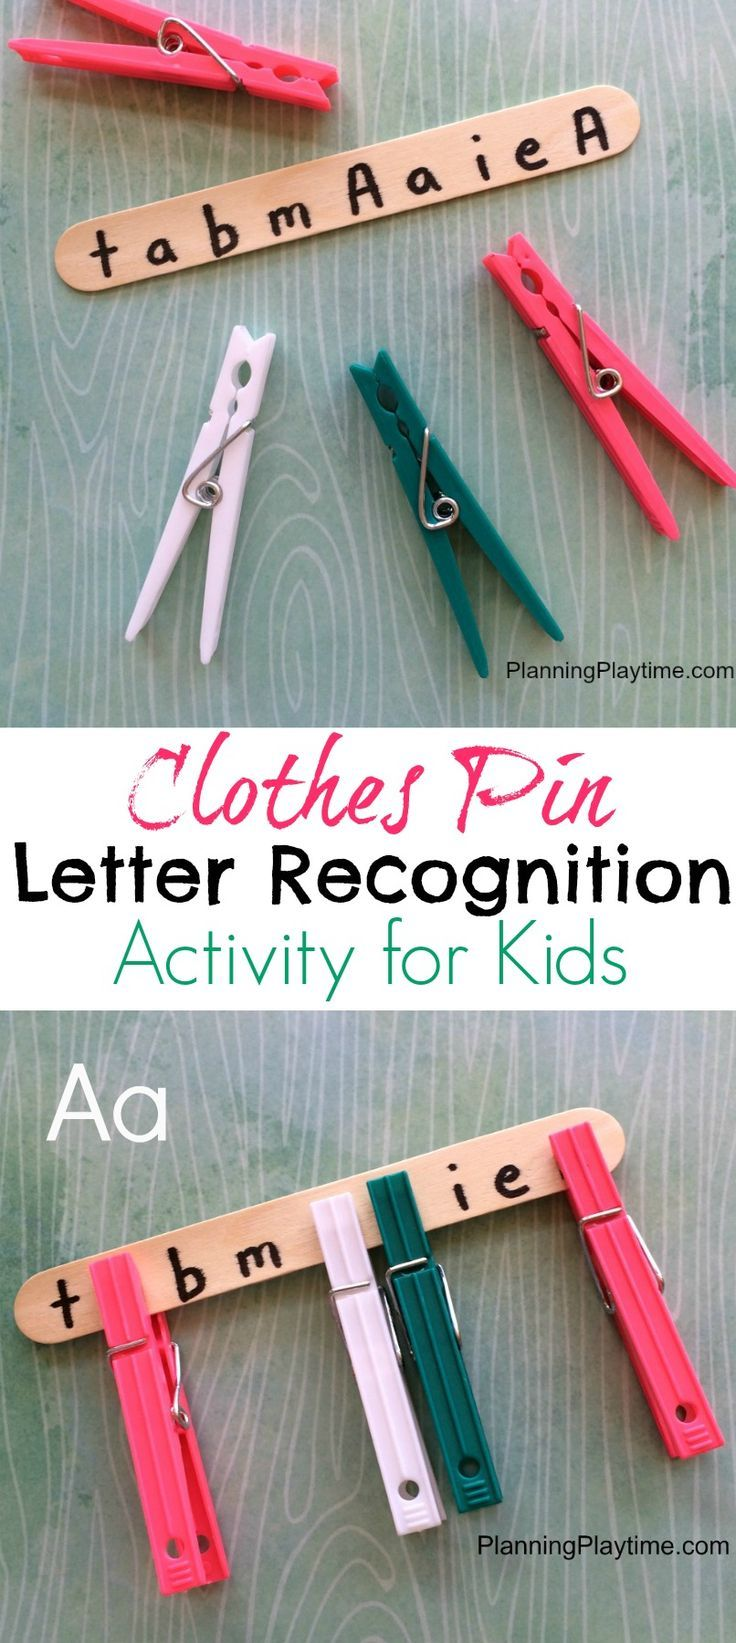 421 best ABCs images on Pinterest | Alphabet letters, Script ...